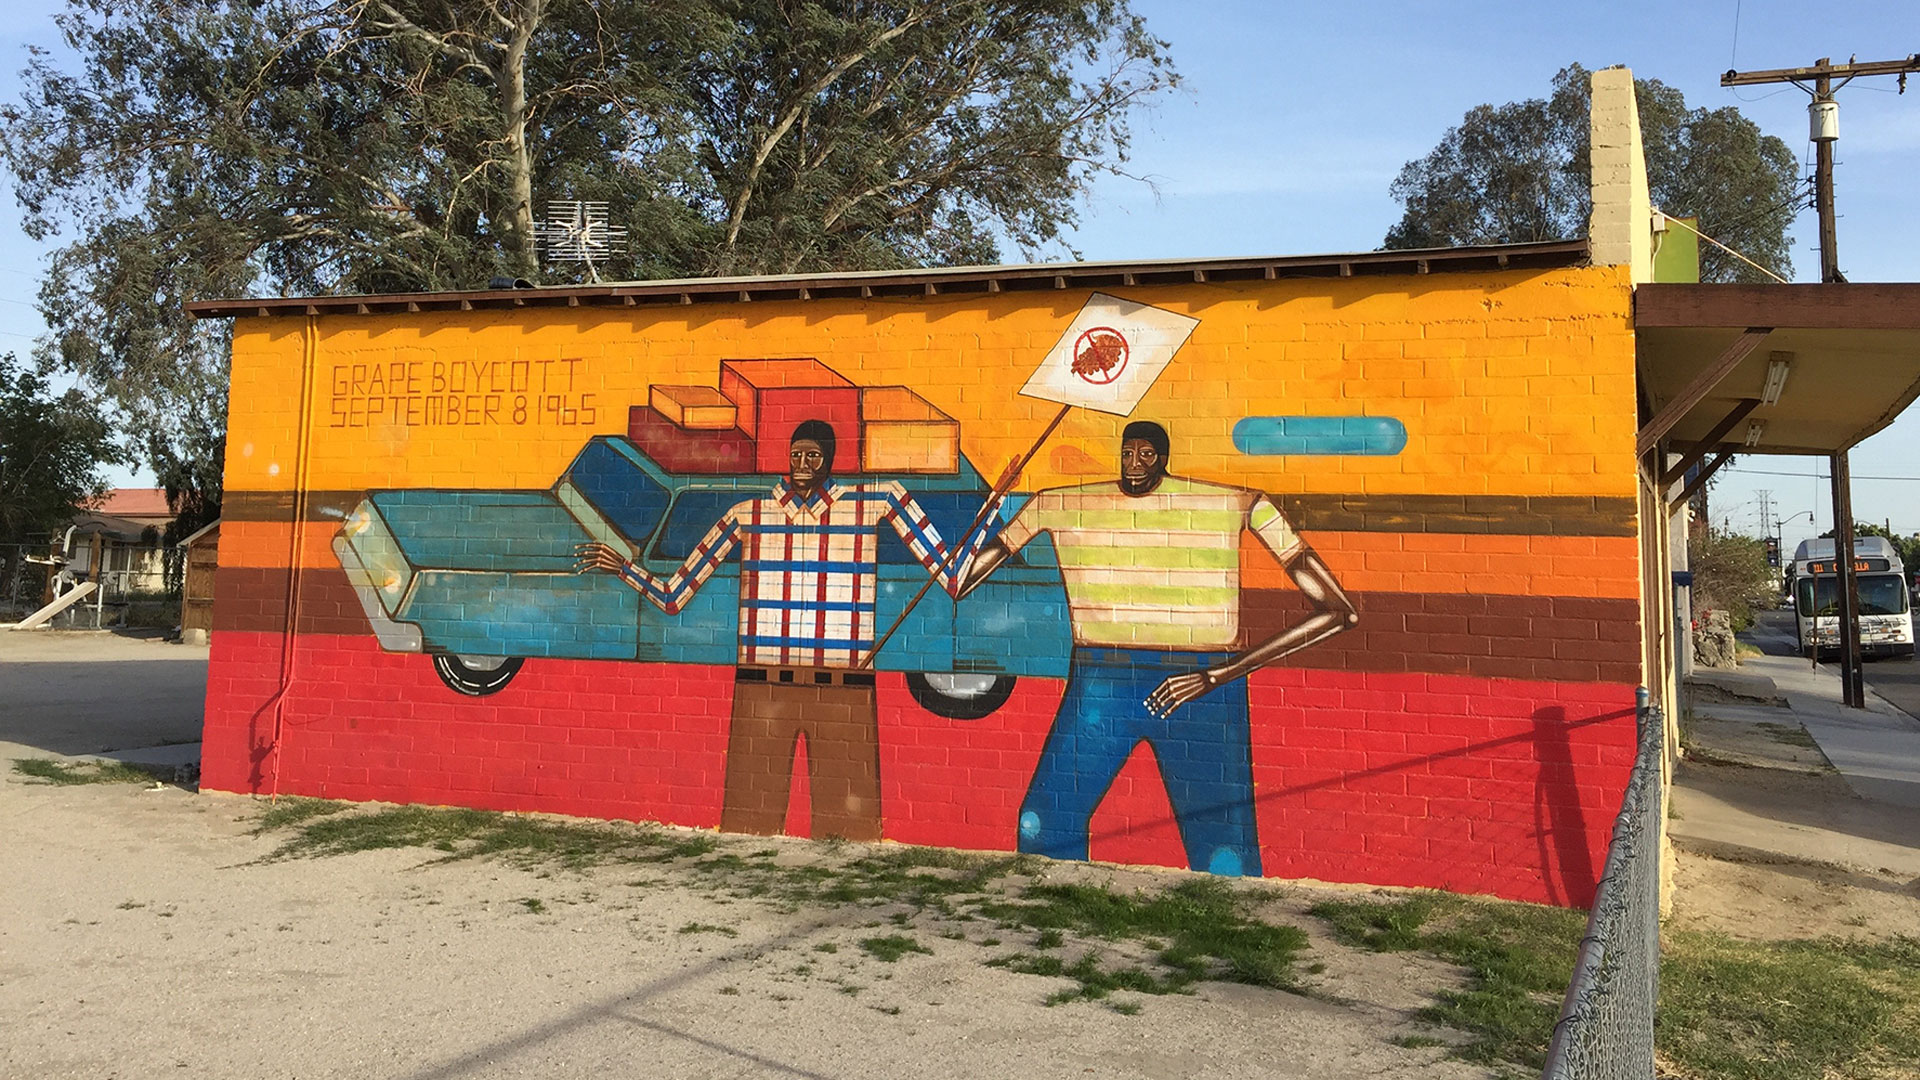 The Farm Workers mural in Coachella